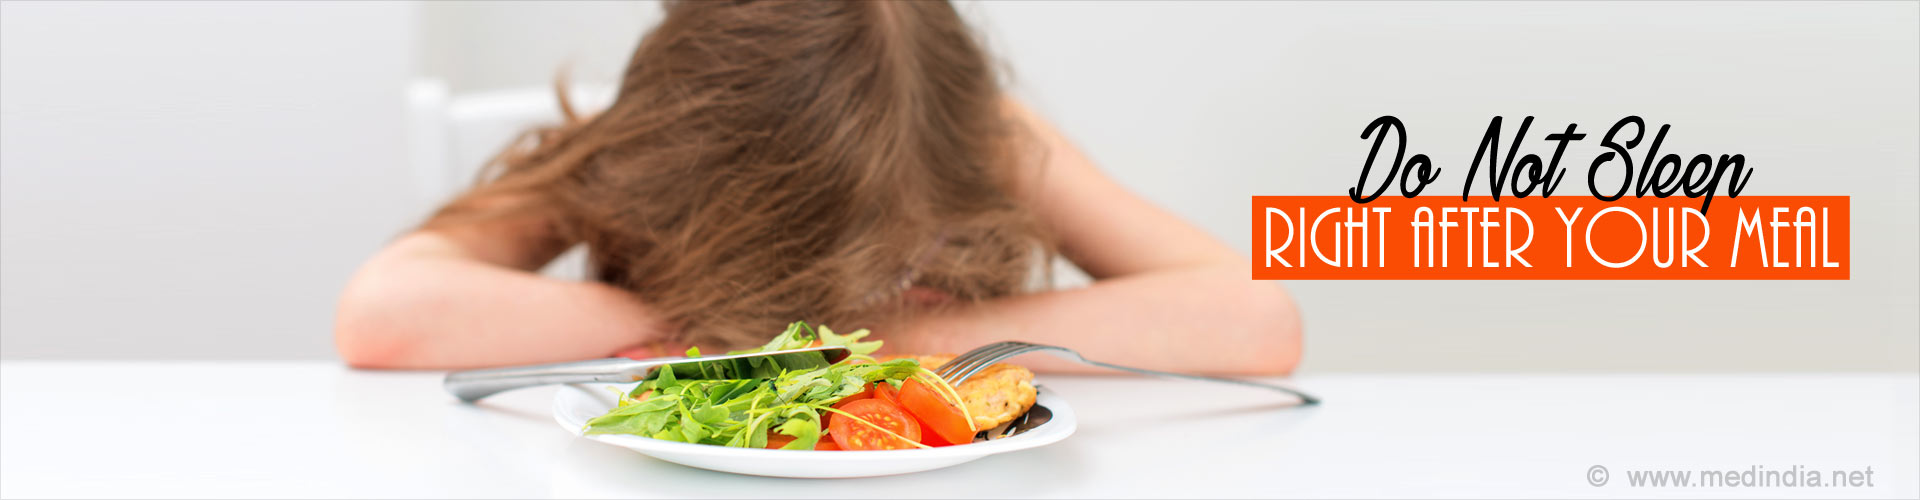 Do Not Sleep Right After your Meal